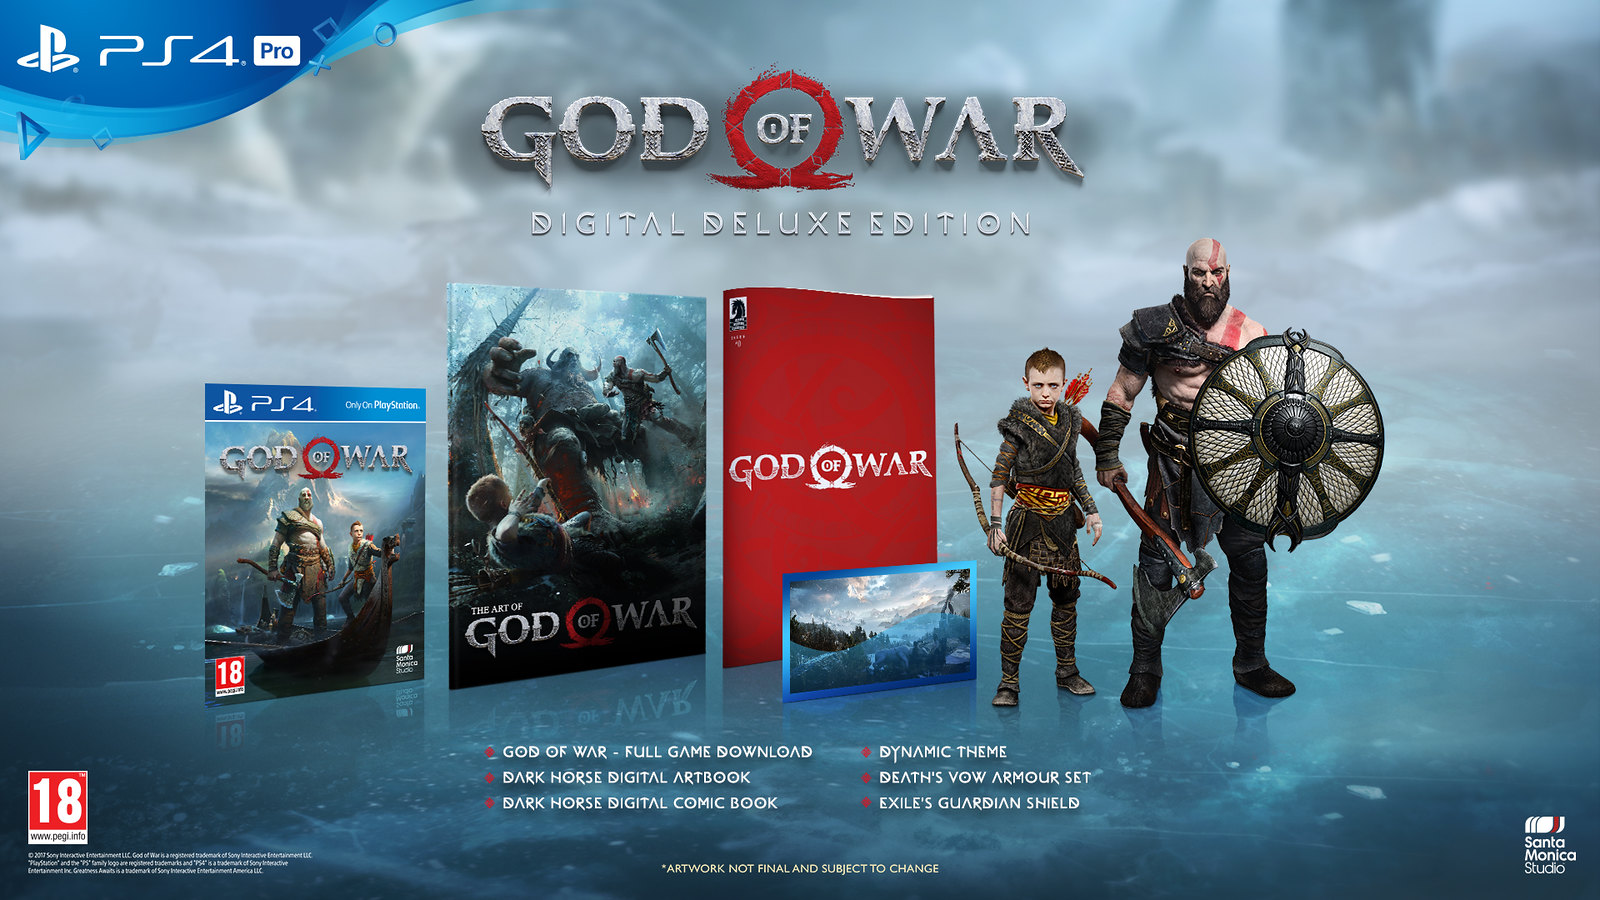 God Of War Release Date Announced Special Editions Revealed New Switch State Mind English Pal Games Again Mark Your Calendars For Wars On 20th April If Youre Not Convinced Yet Watch That Trailer One More Time Or Follow Us Facebook